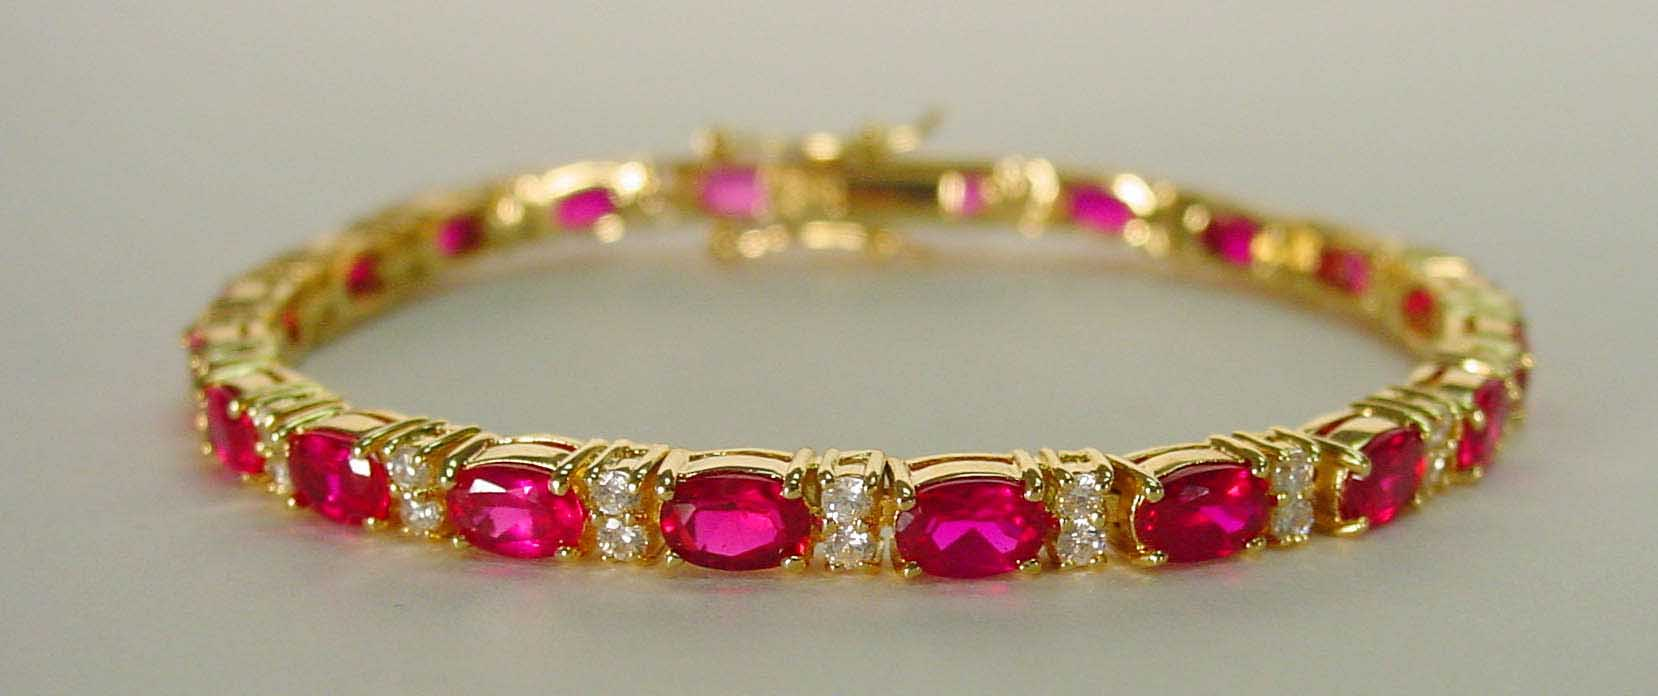 Browse Gold Jewelry Gold Rings Bracelets Necklaces